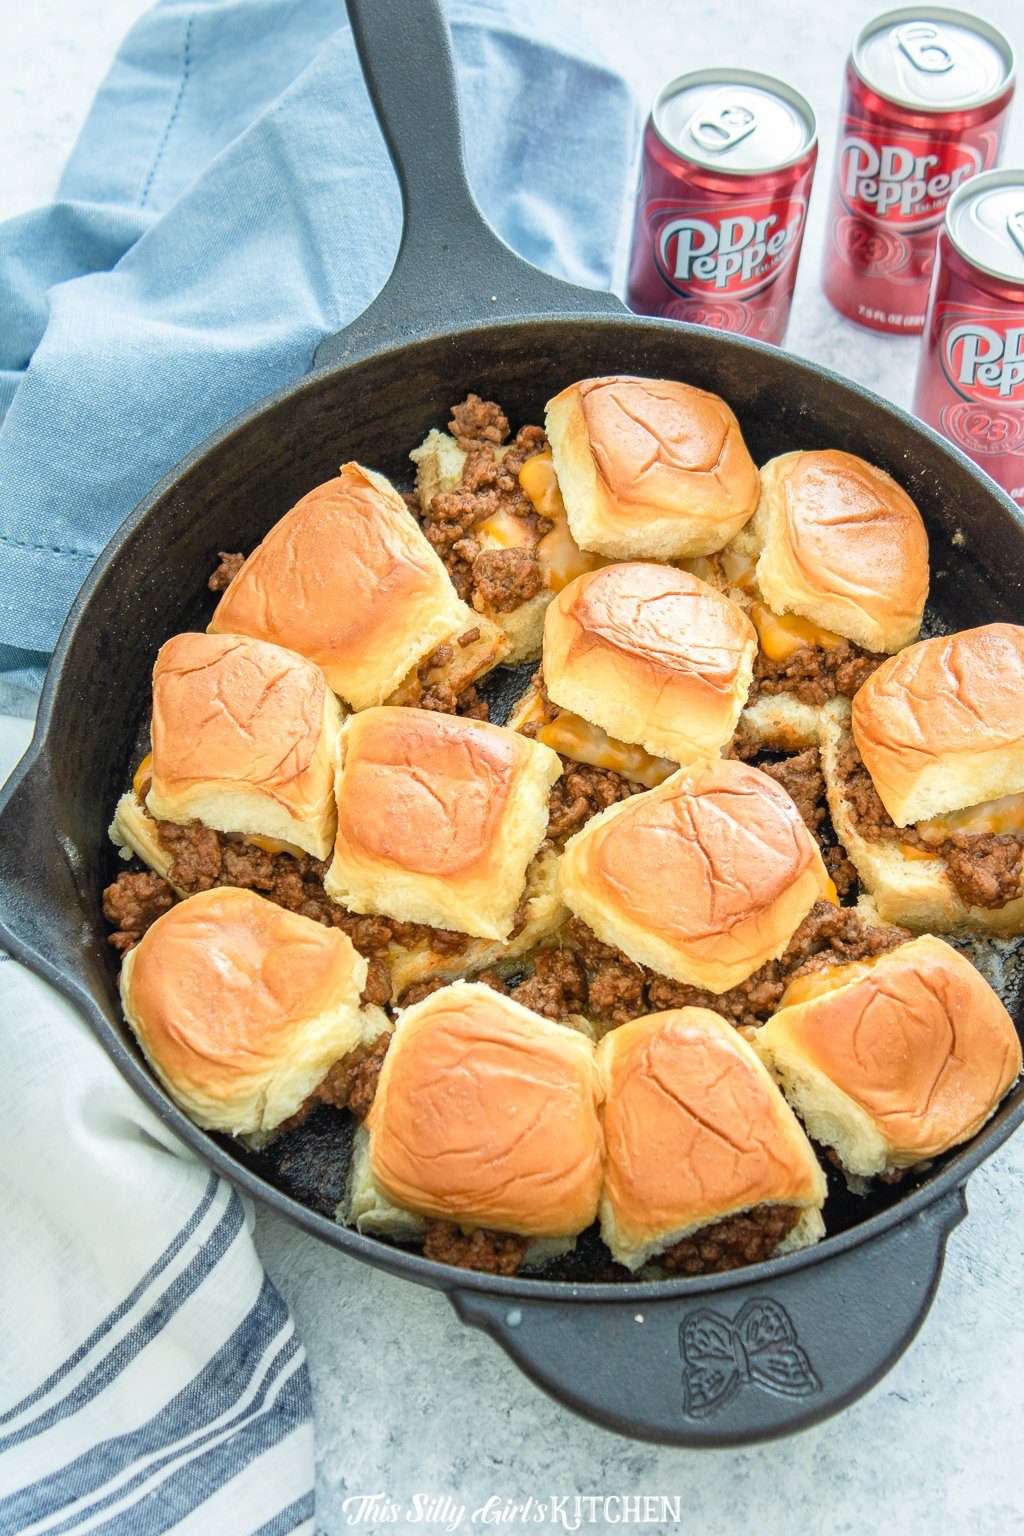 Sloppy Joe Sliders: Sloppy joe mix on top of slider buns with melty cheese and caramelized onions, baked until bubbly. #recipe from thissillygirlskitchen.com #sloppyjoe #sliders #gamedayfood